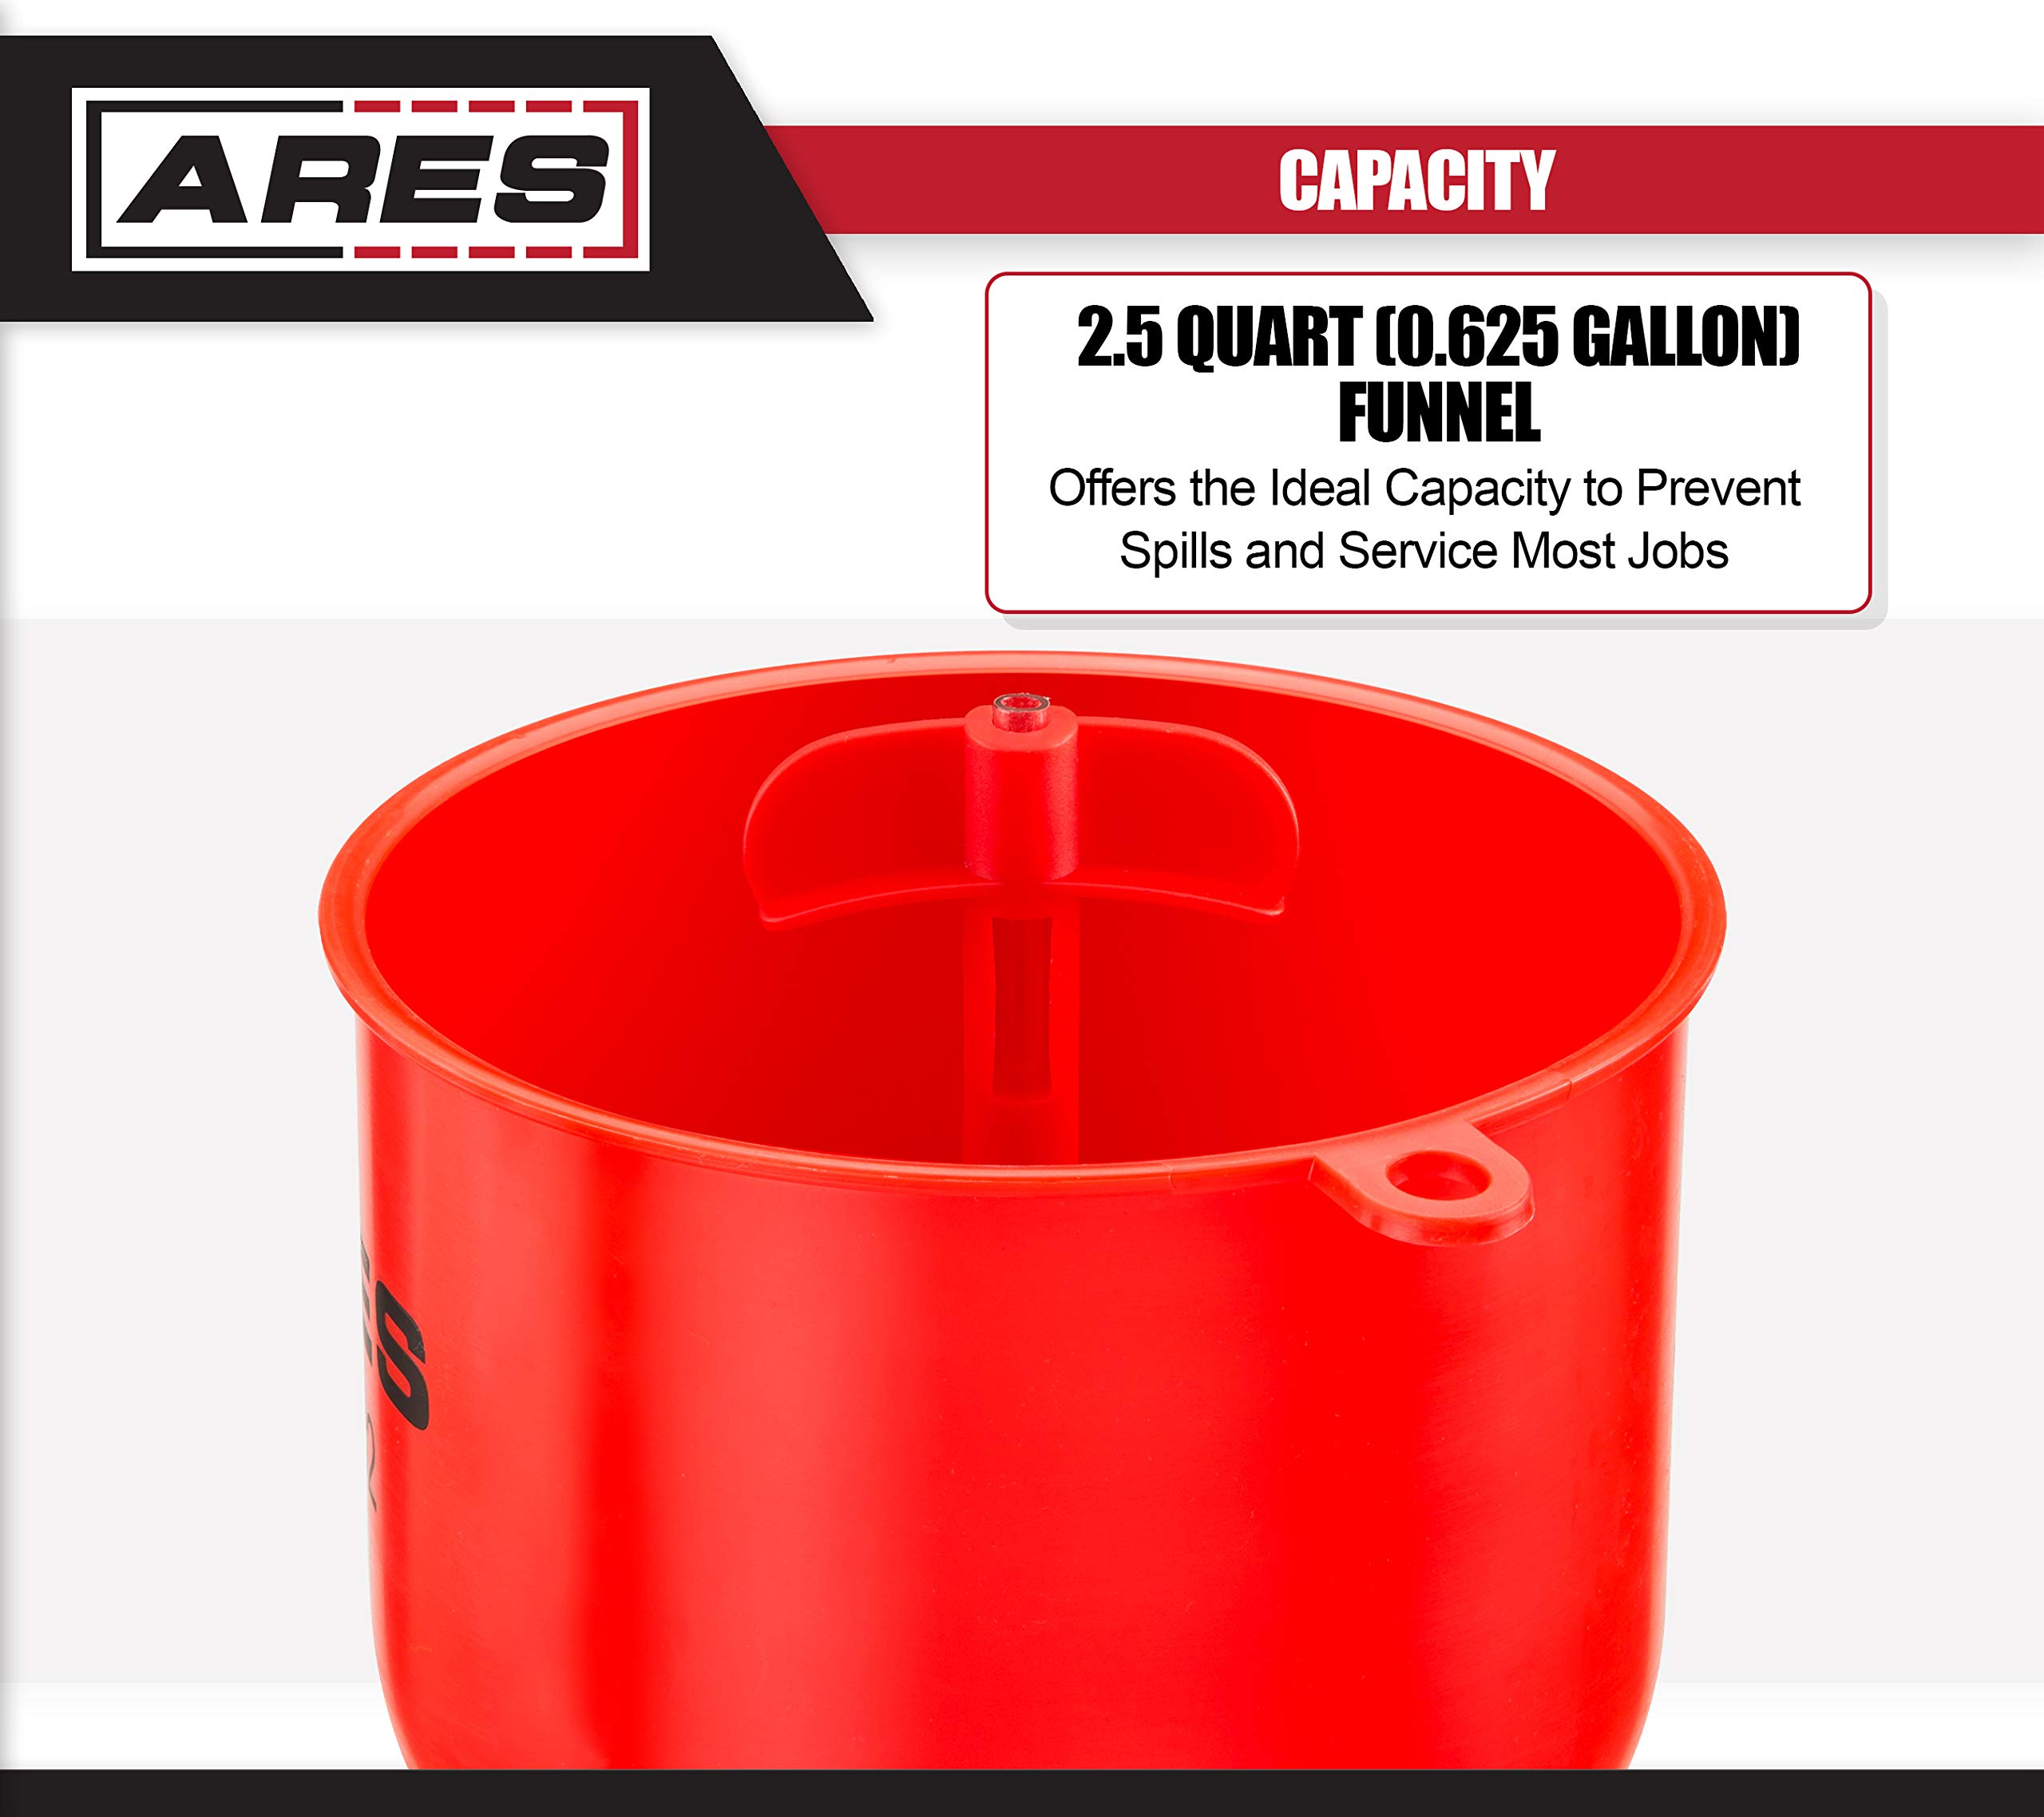 ARES 71502 | Spill Proof Coolant Filling Kit | Eliminates Trapped Air Pockets and Squeaky Belts Due to Overflow by ARES (Image #2)